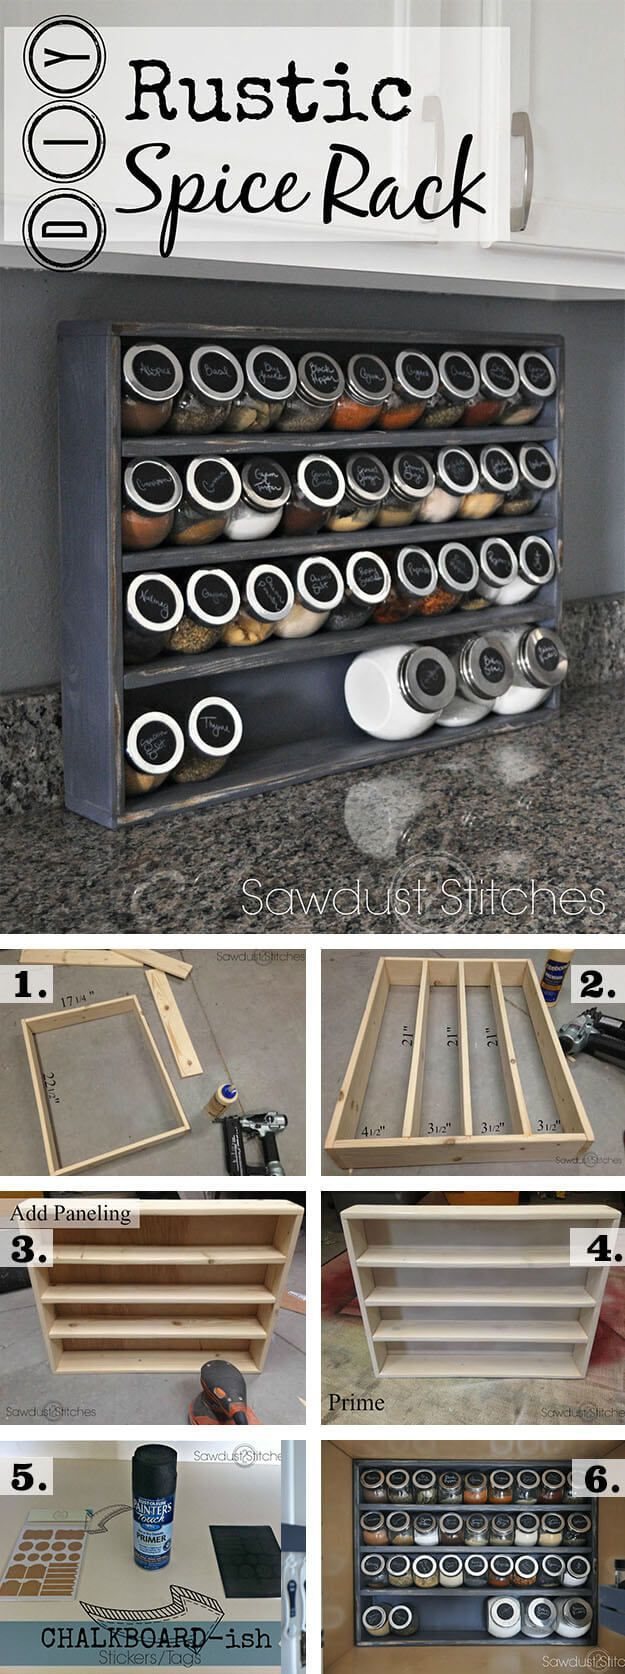 36 Best DIY Rustic Storage Projects (Ideas and Designs) for 2017